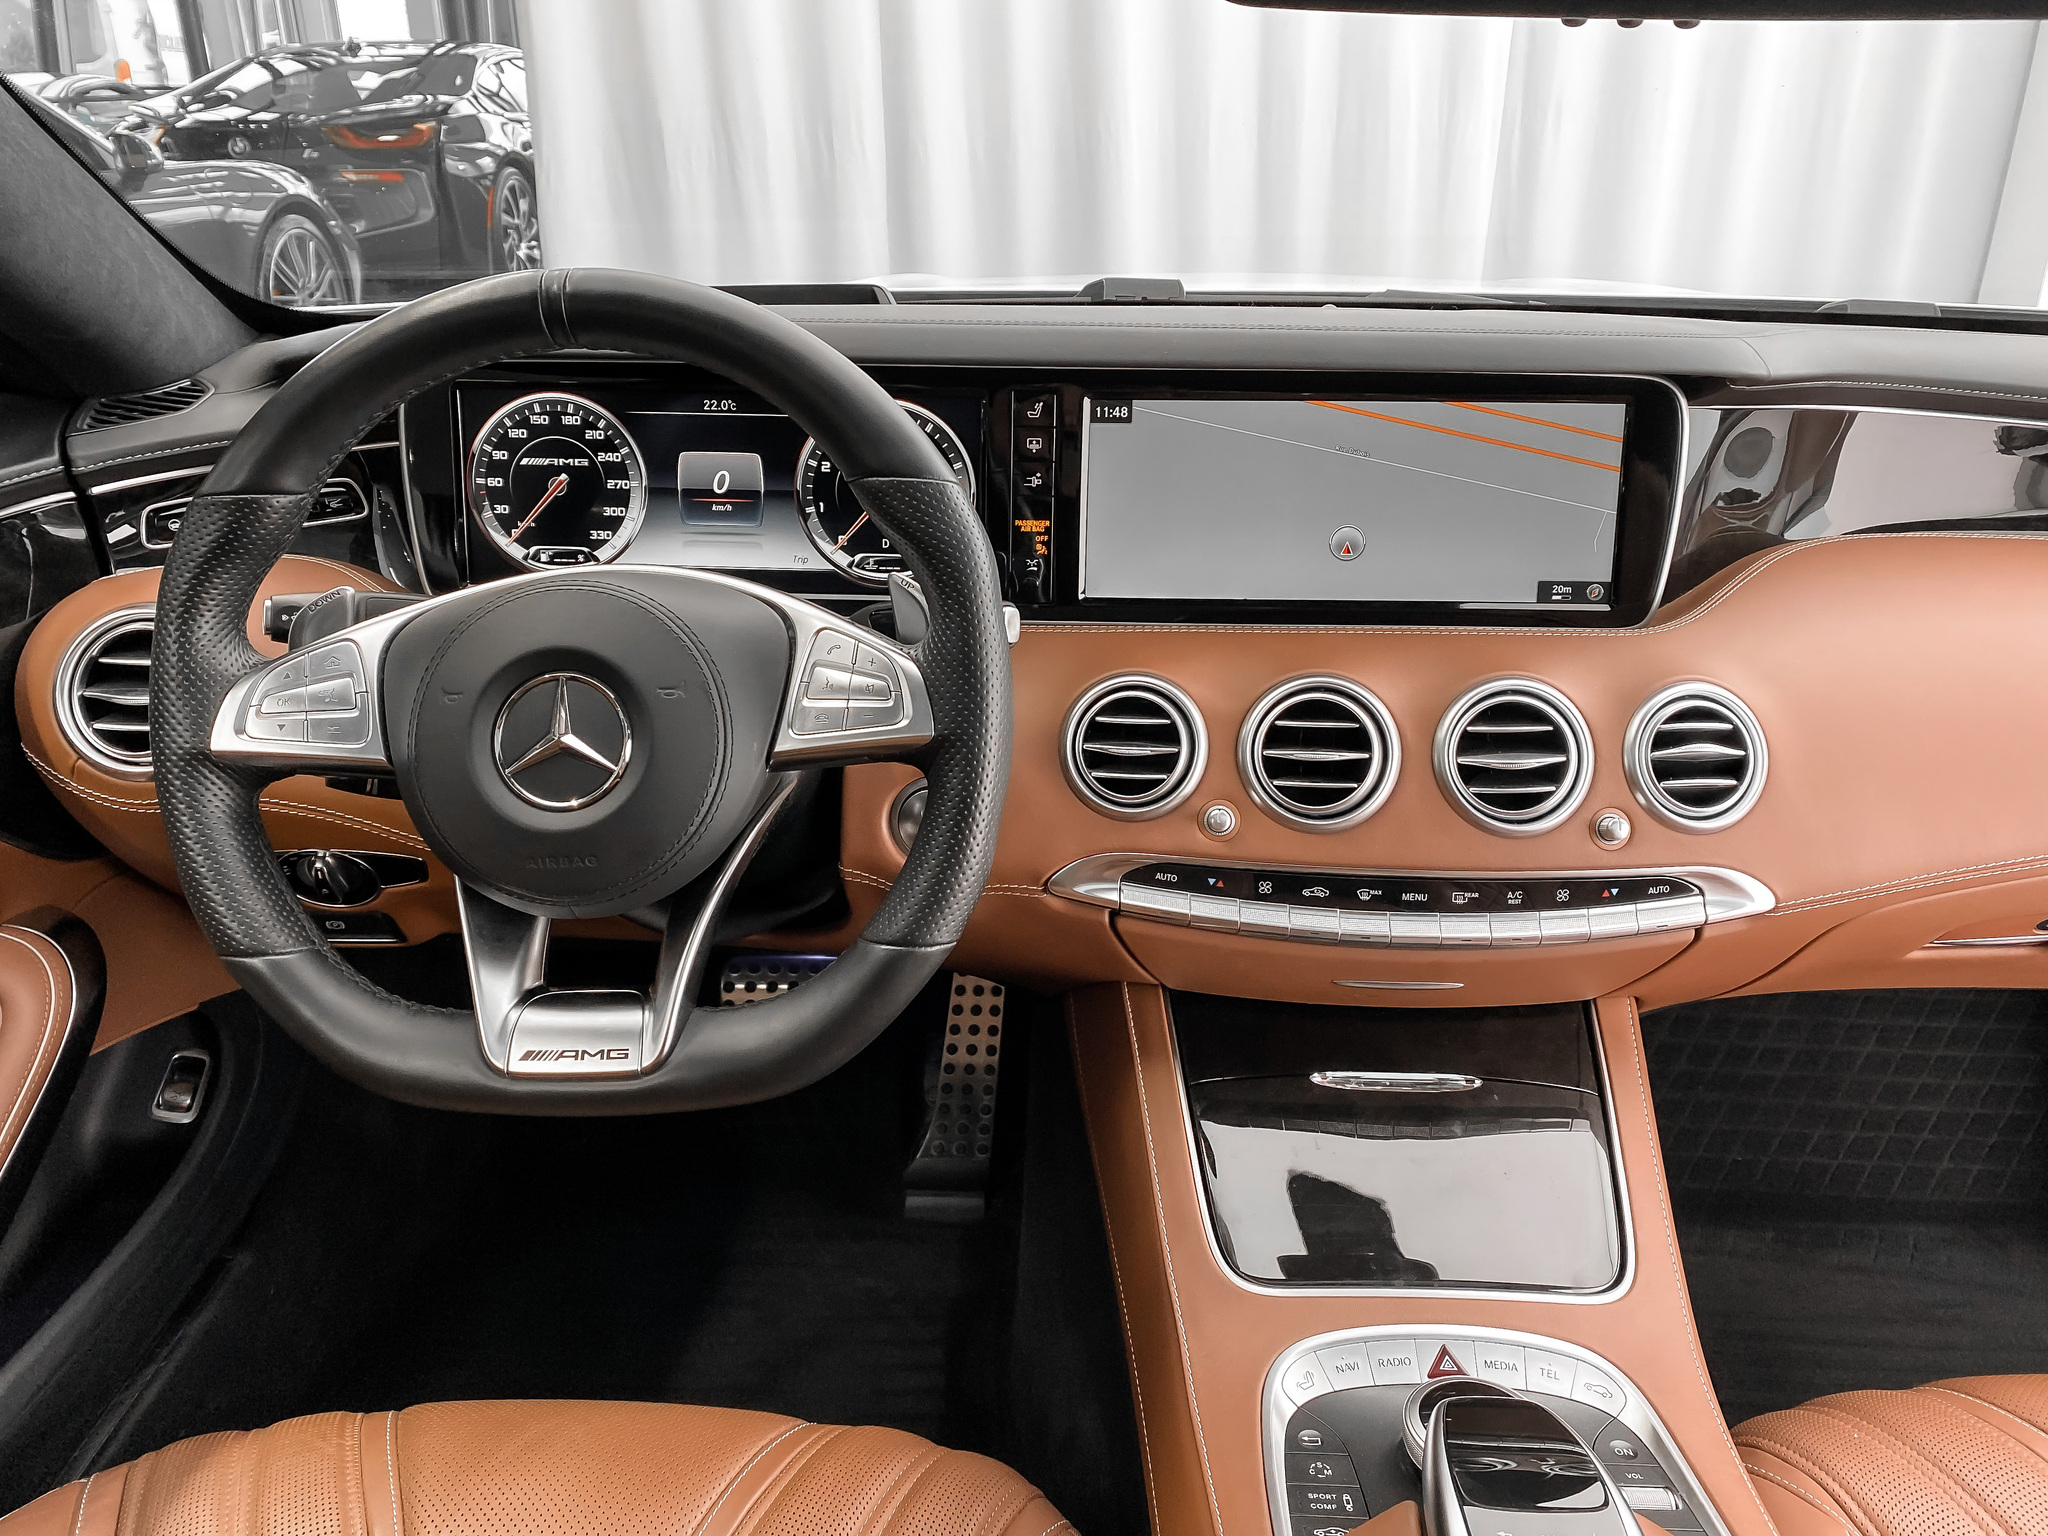 2017 Mercedes-Benz S-Class S63 AMG COUPE 4MATIC 577HP NIGHTVIEW / SWAROVSKI complet